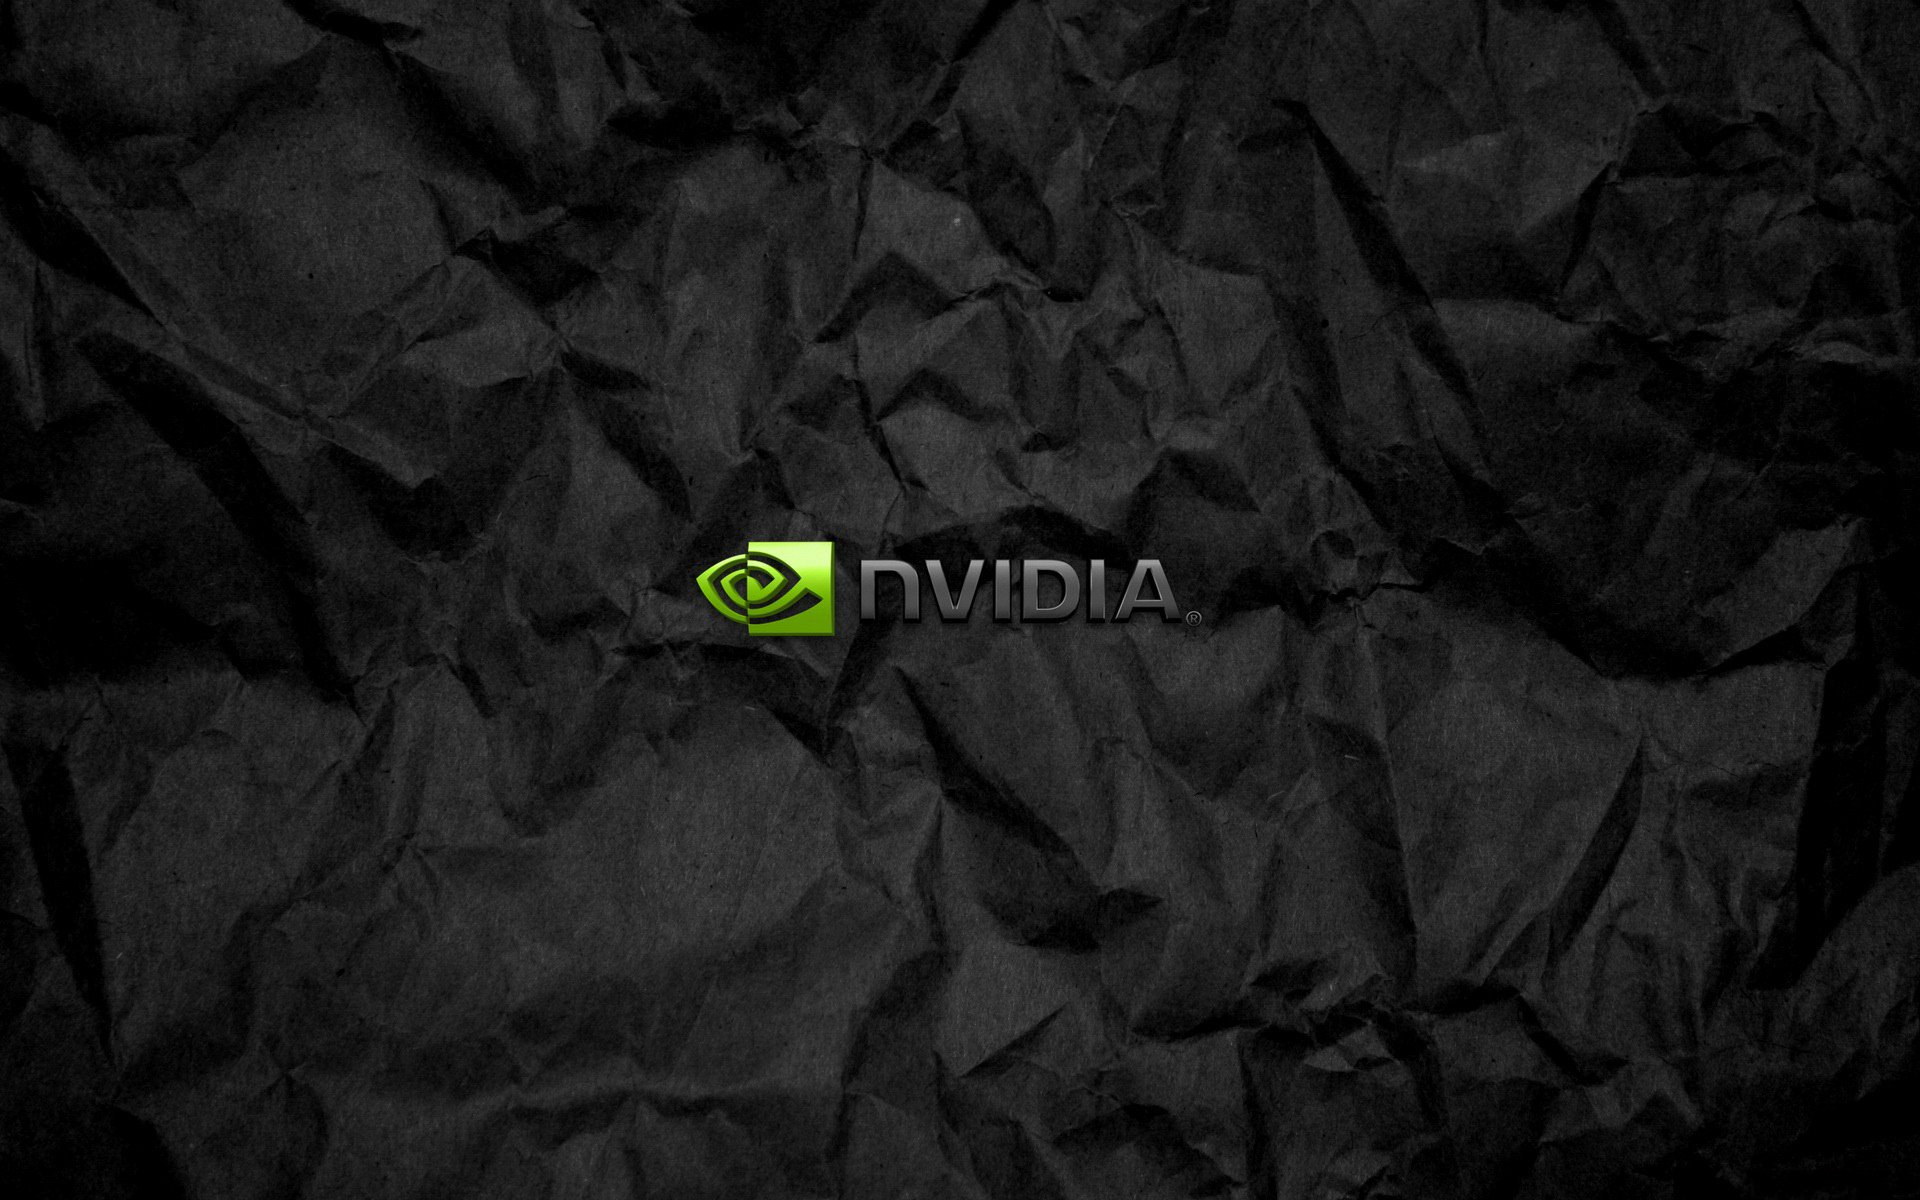 Nvidia Full HD Wallpaper and Background 1920x1200 ID385737